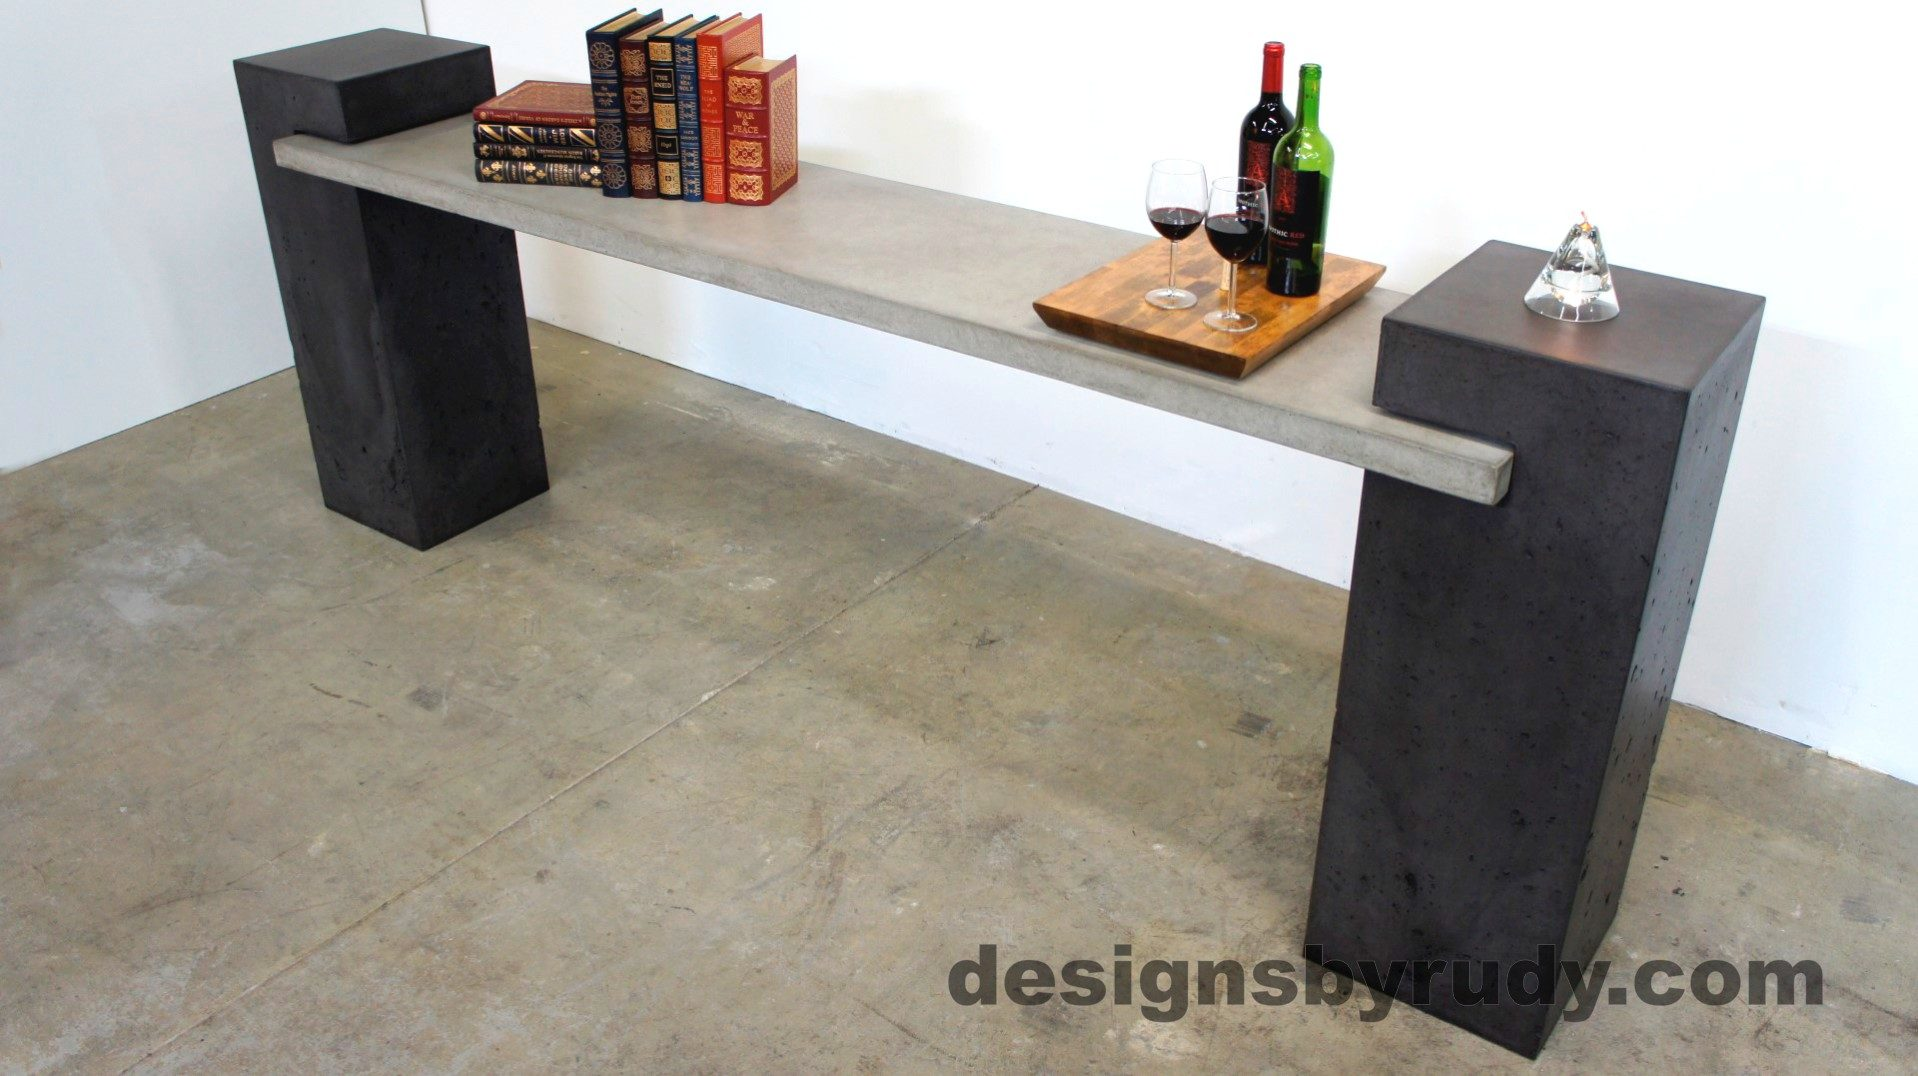 Top angle view of a Concrete Buffet Table designed by Designs by Rudy